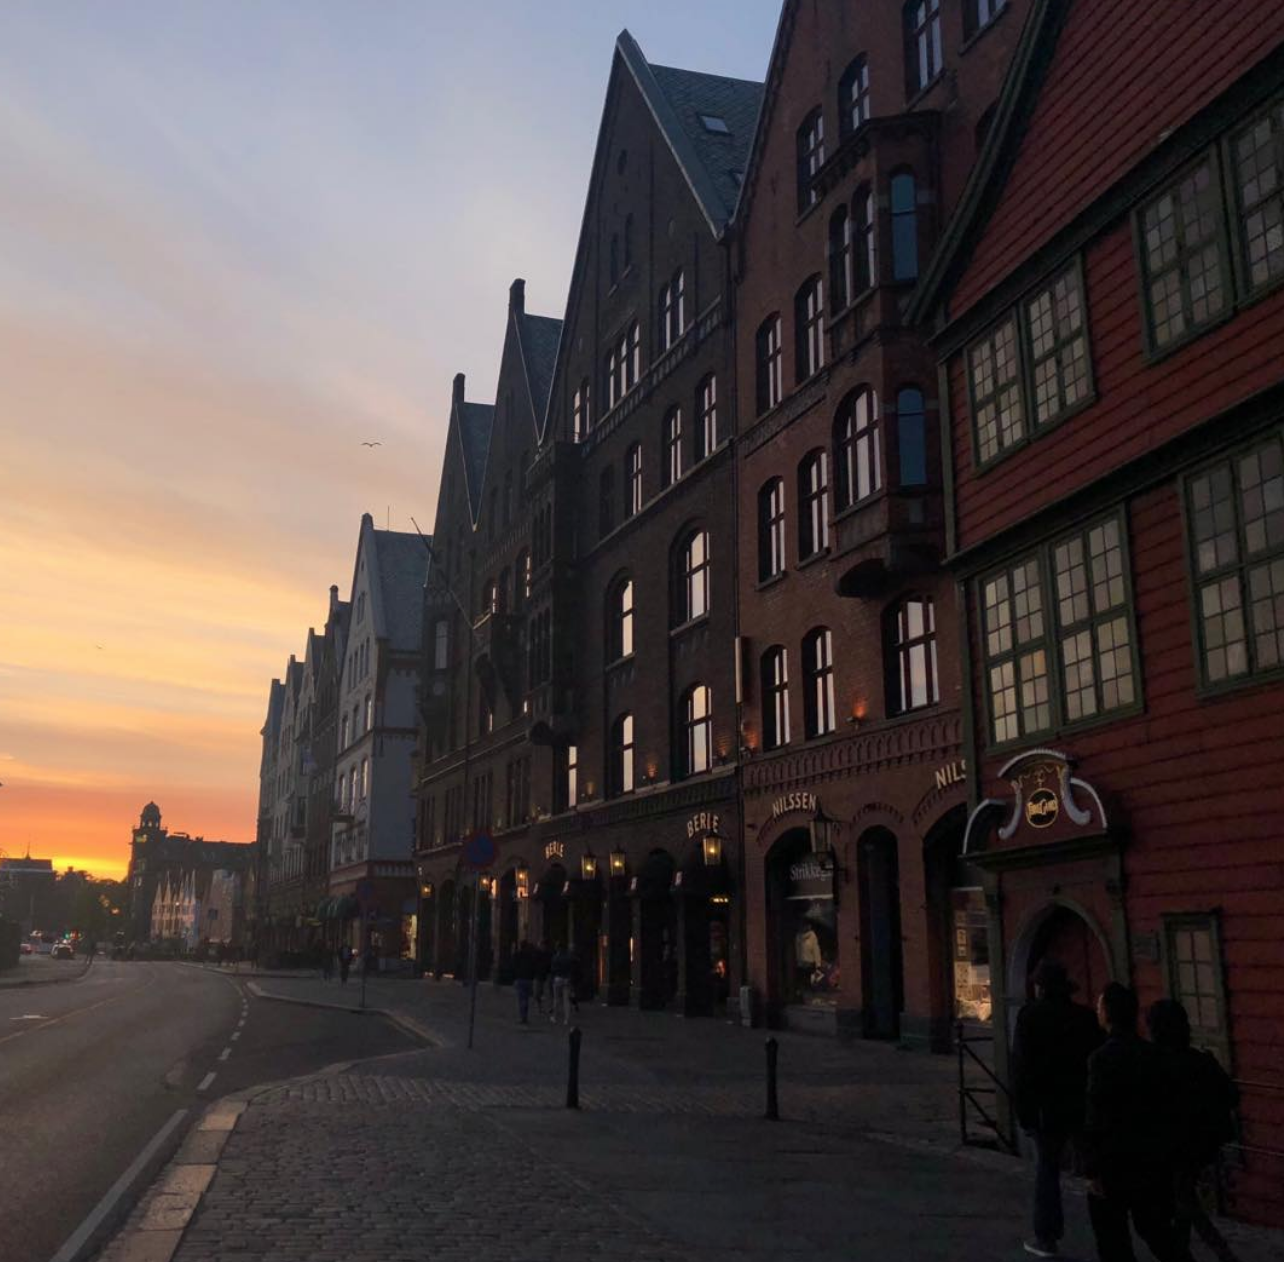 Row of old, charming buildings along the Bryggen wharf